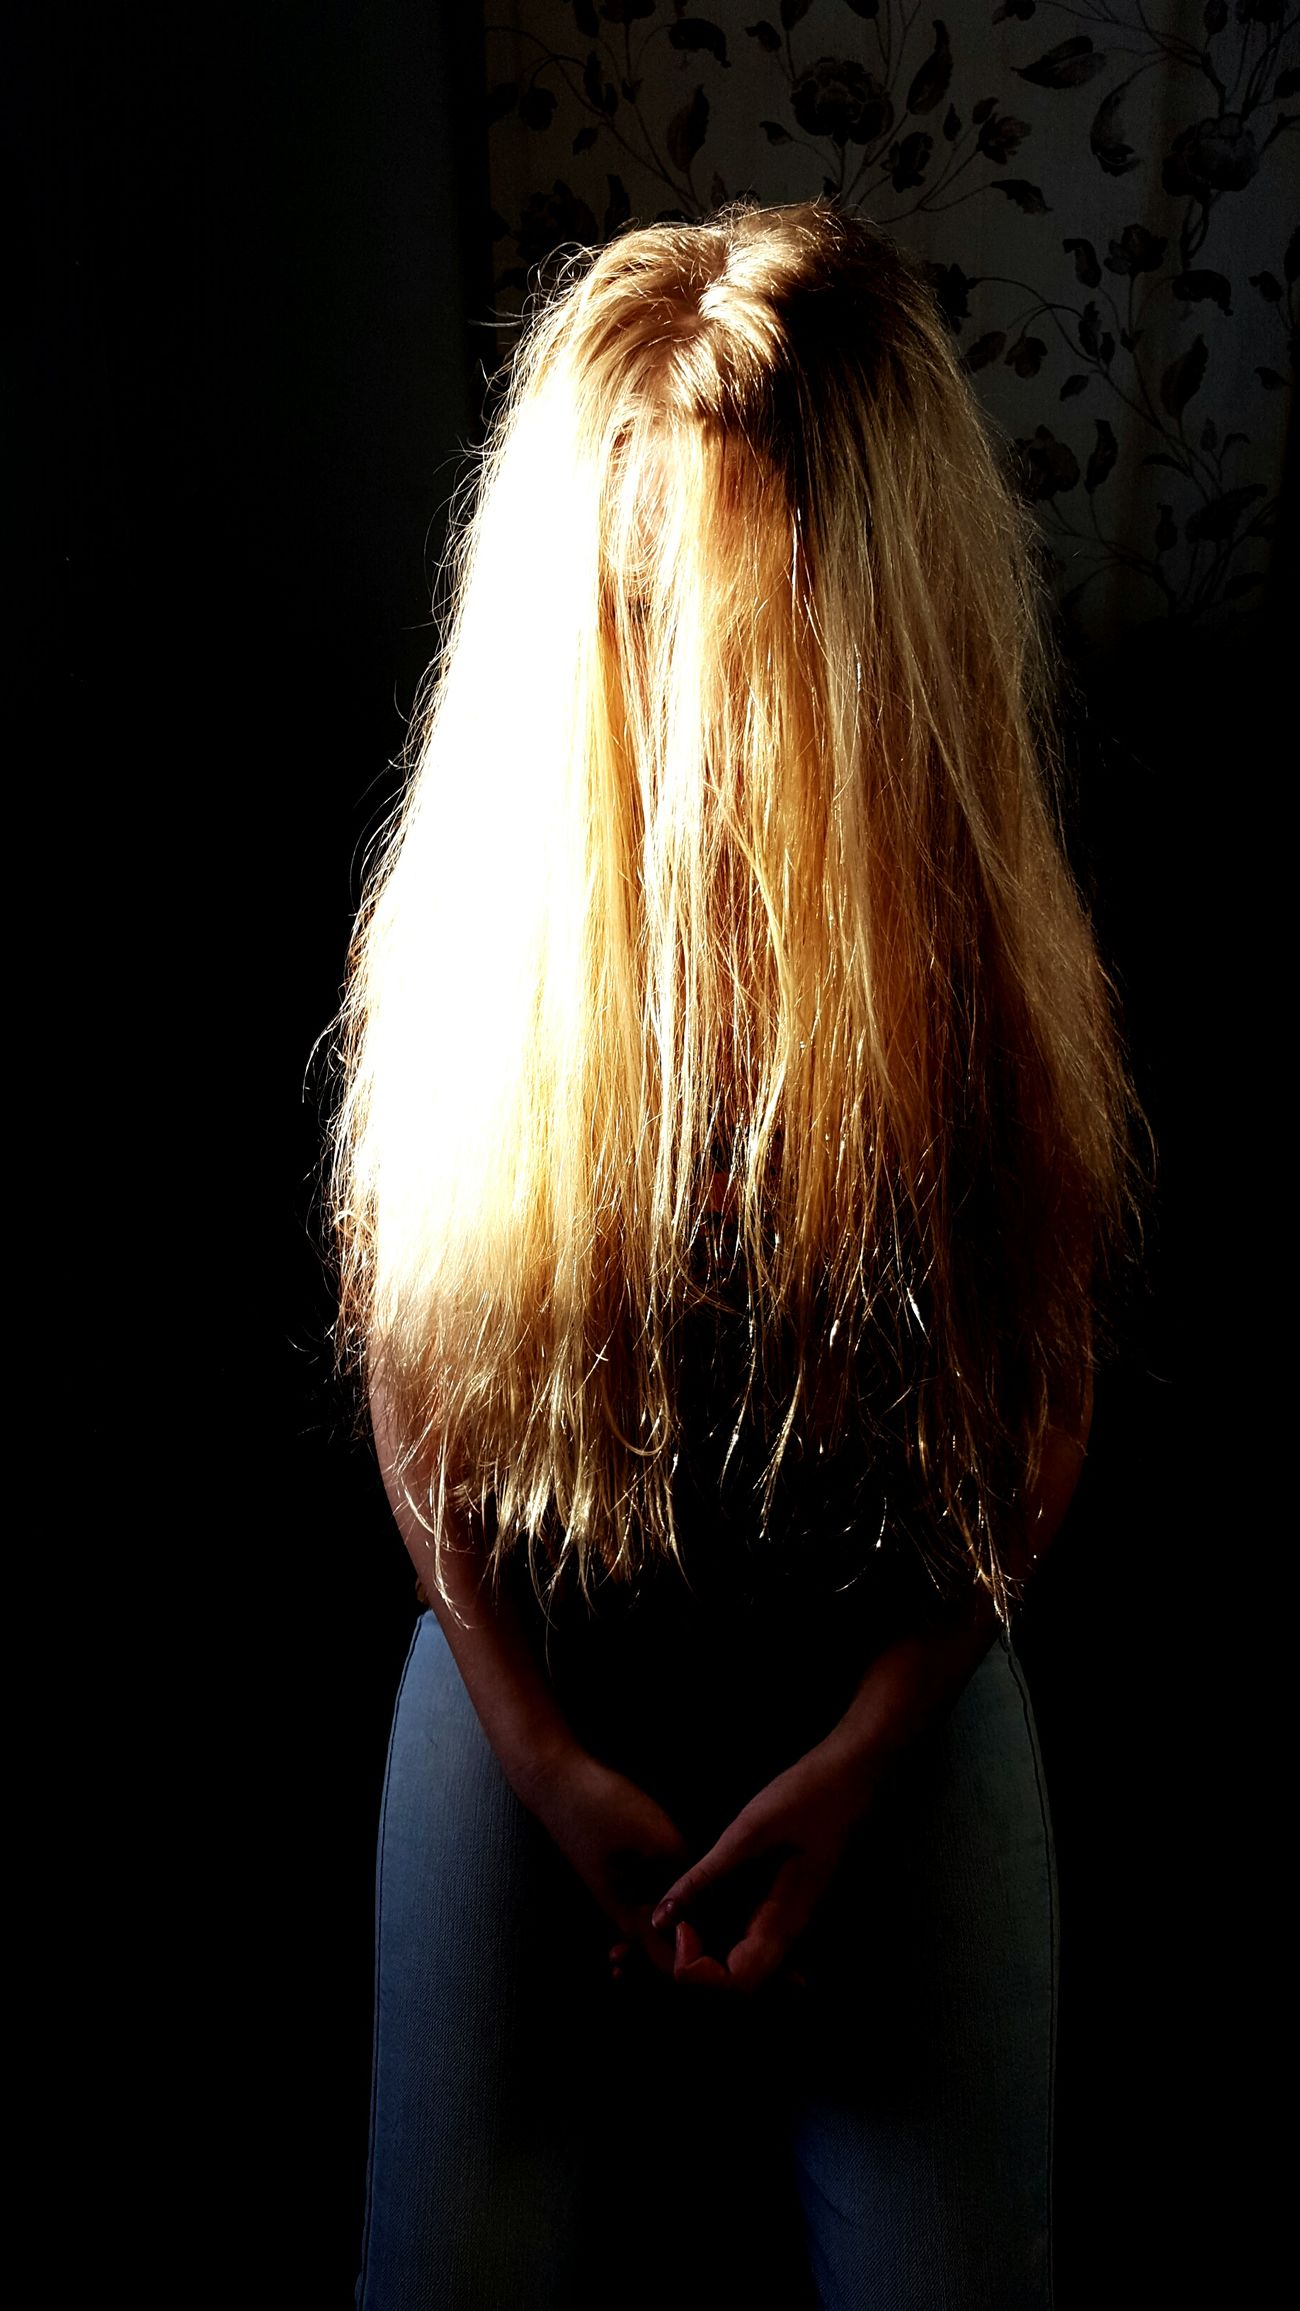 One Person Blond Hair Human Body Part Long Hair Blonde Girl Surrealism Sunset Dramatic Angles